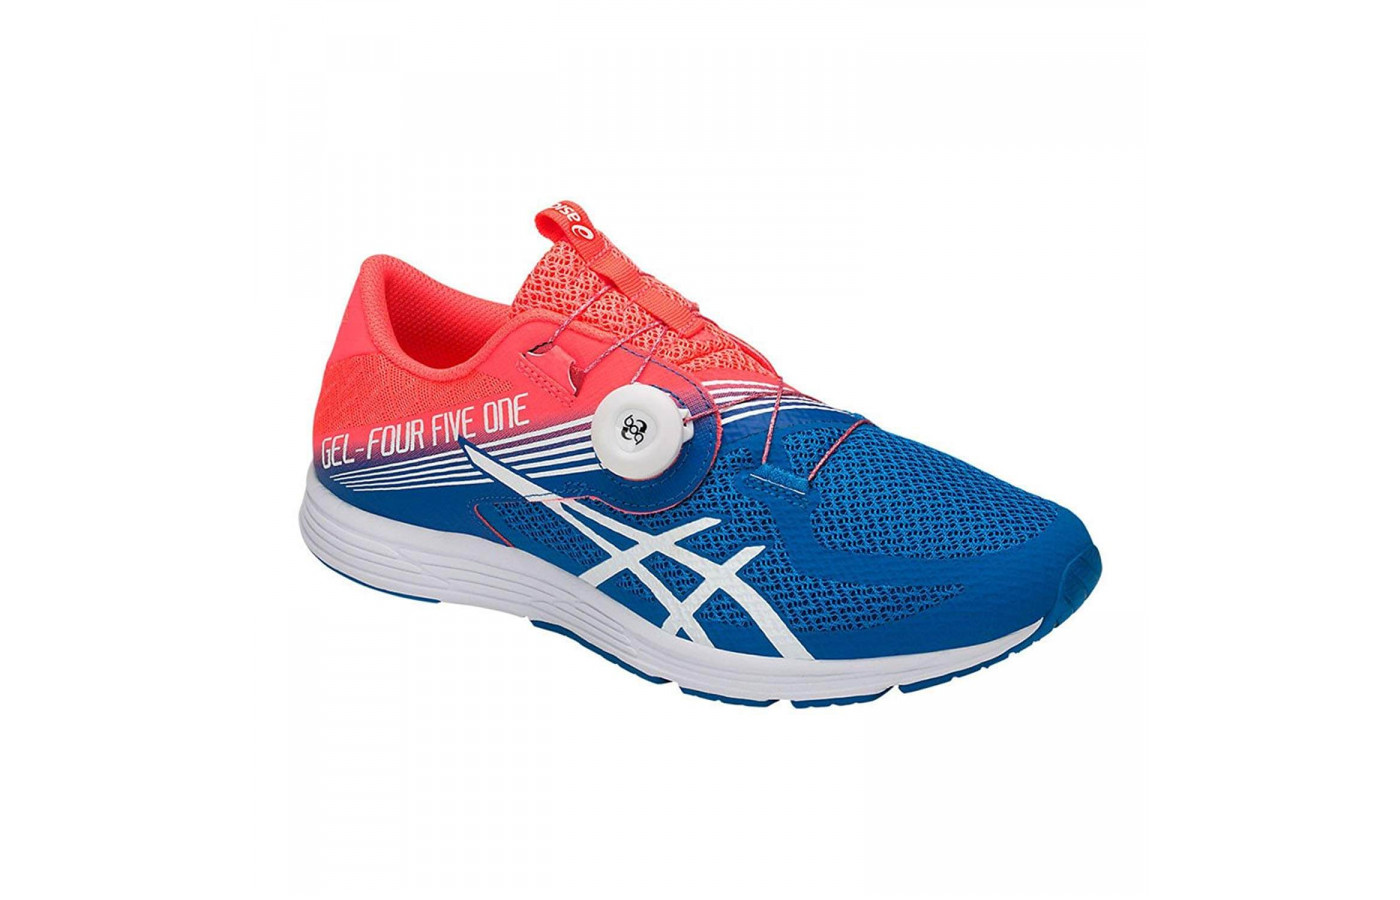 The ASICS GEL 451 Boa Fit System